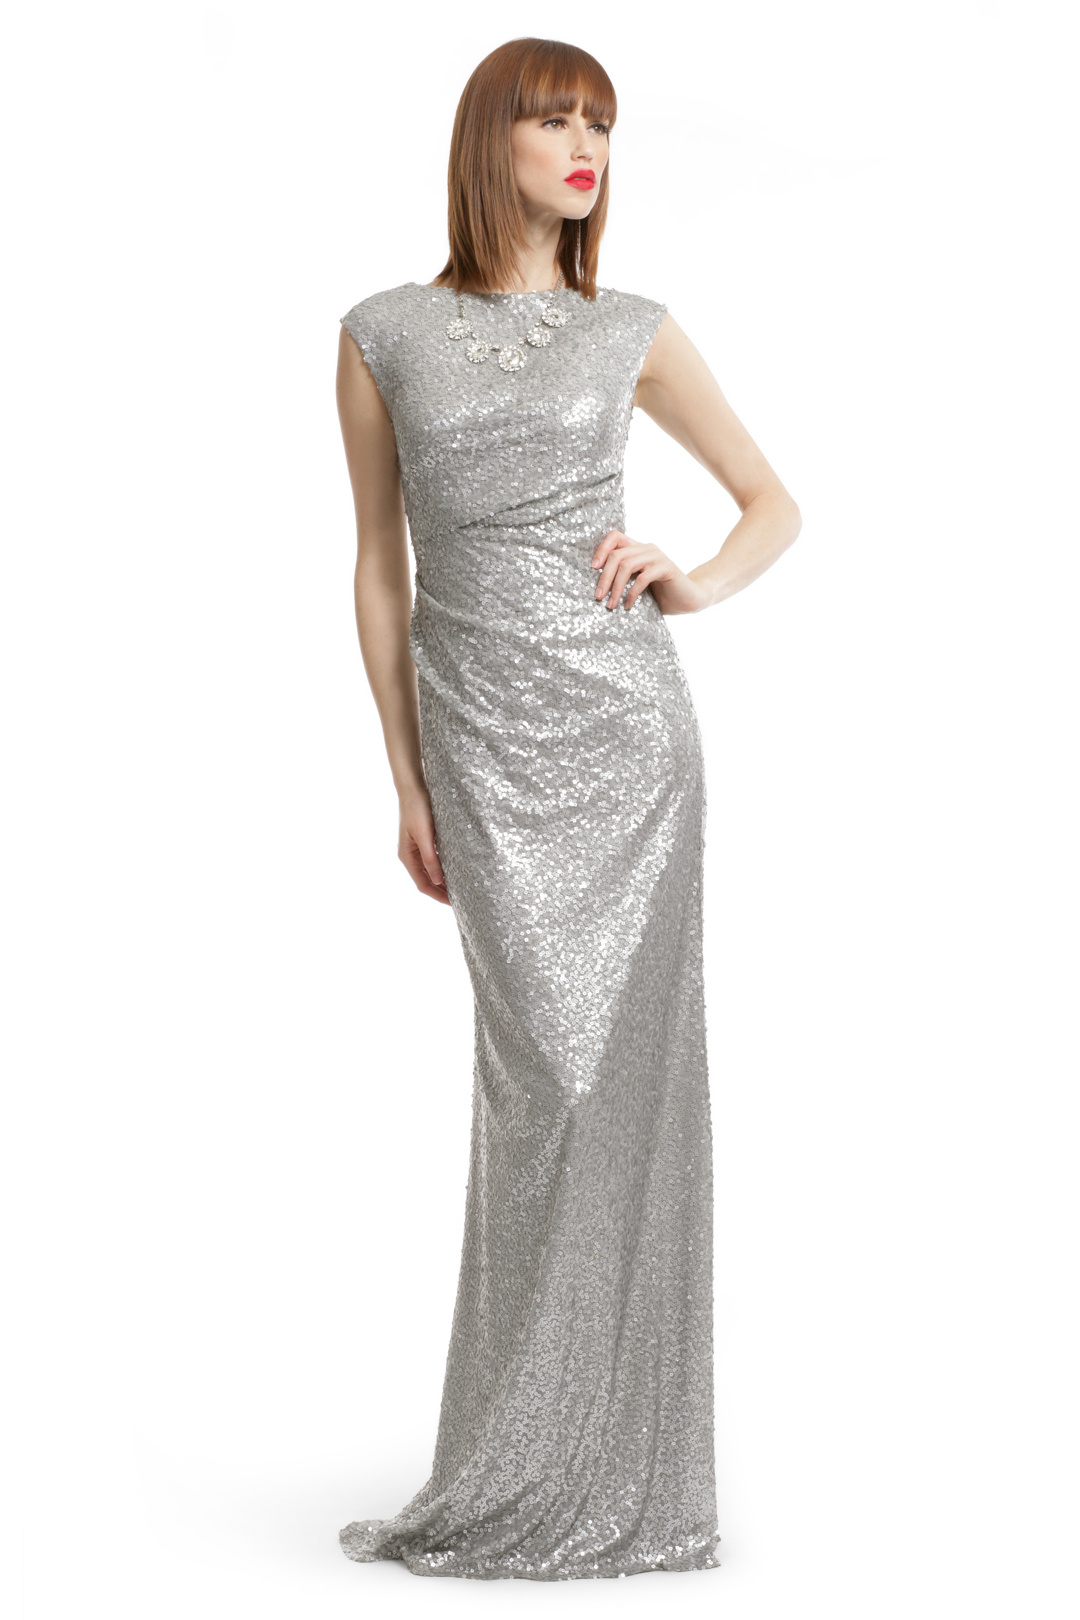 silver sequin dress silver sequin shine gown by david meister for $49 | rent the runway XDOOXBI